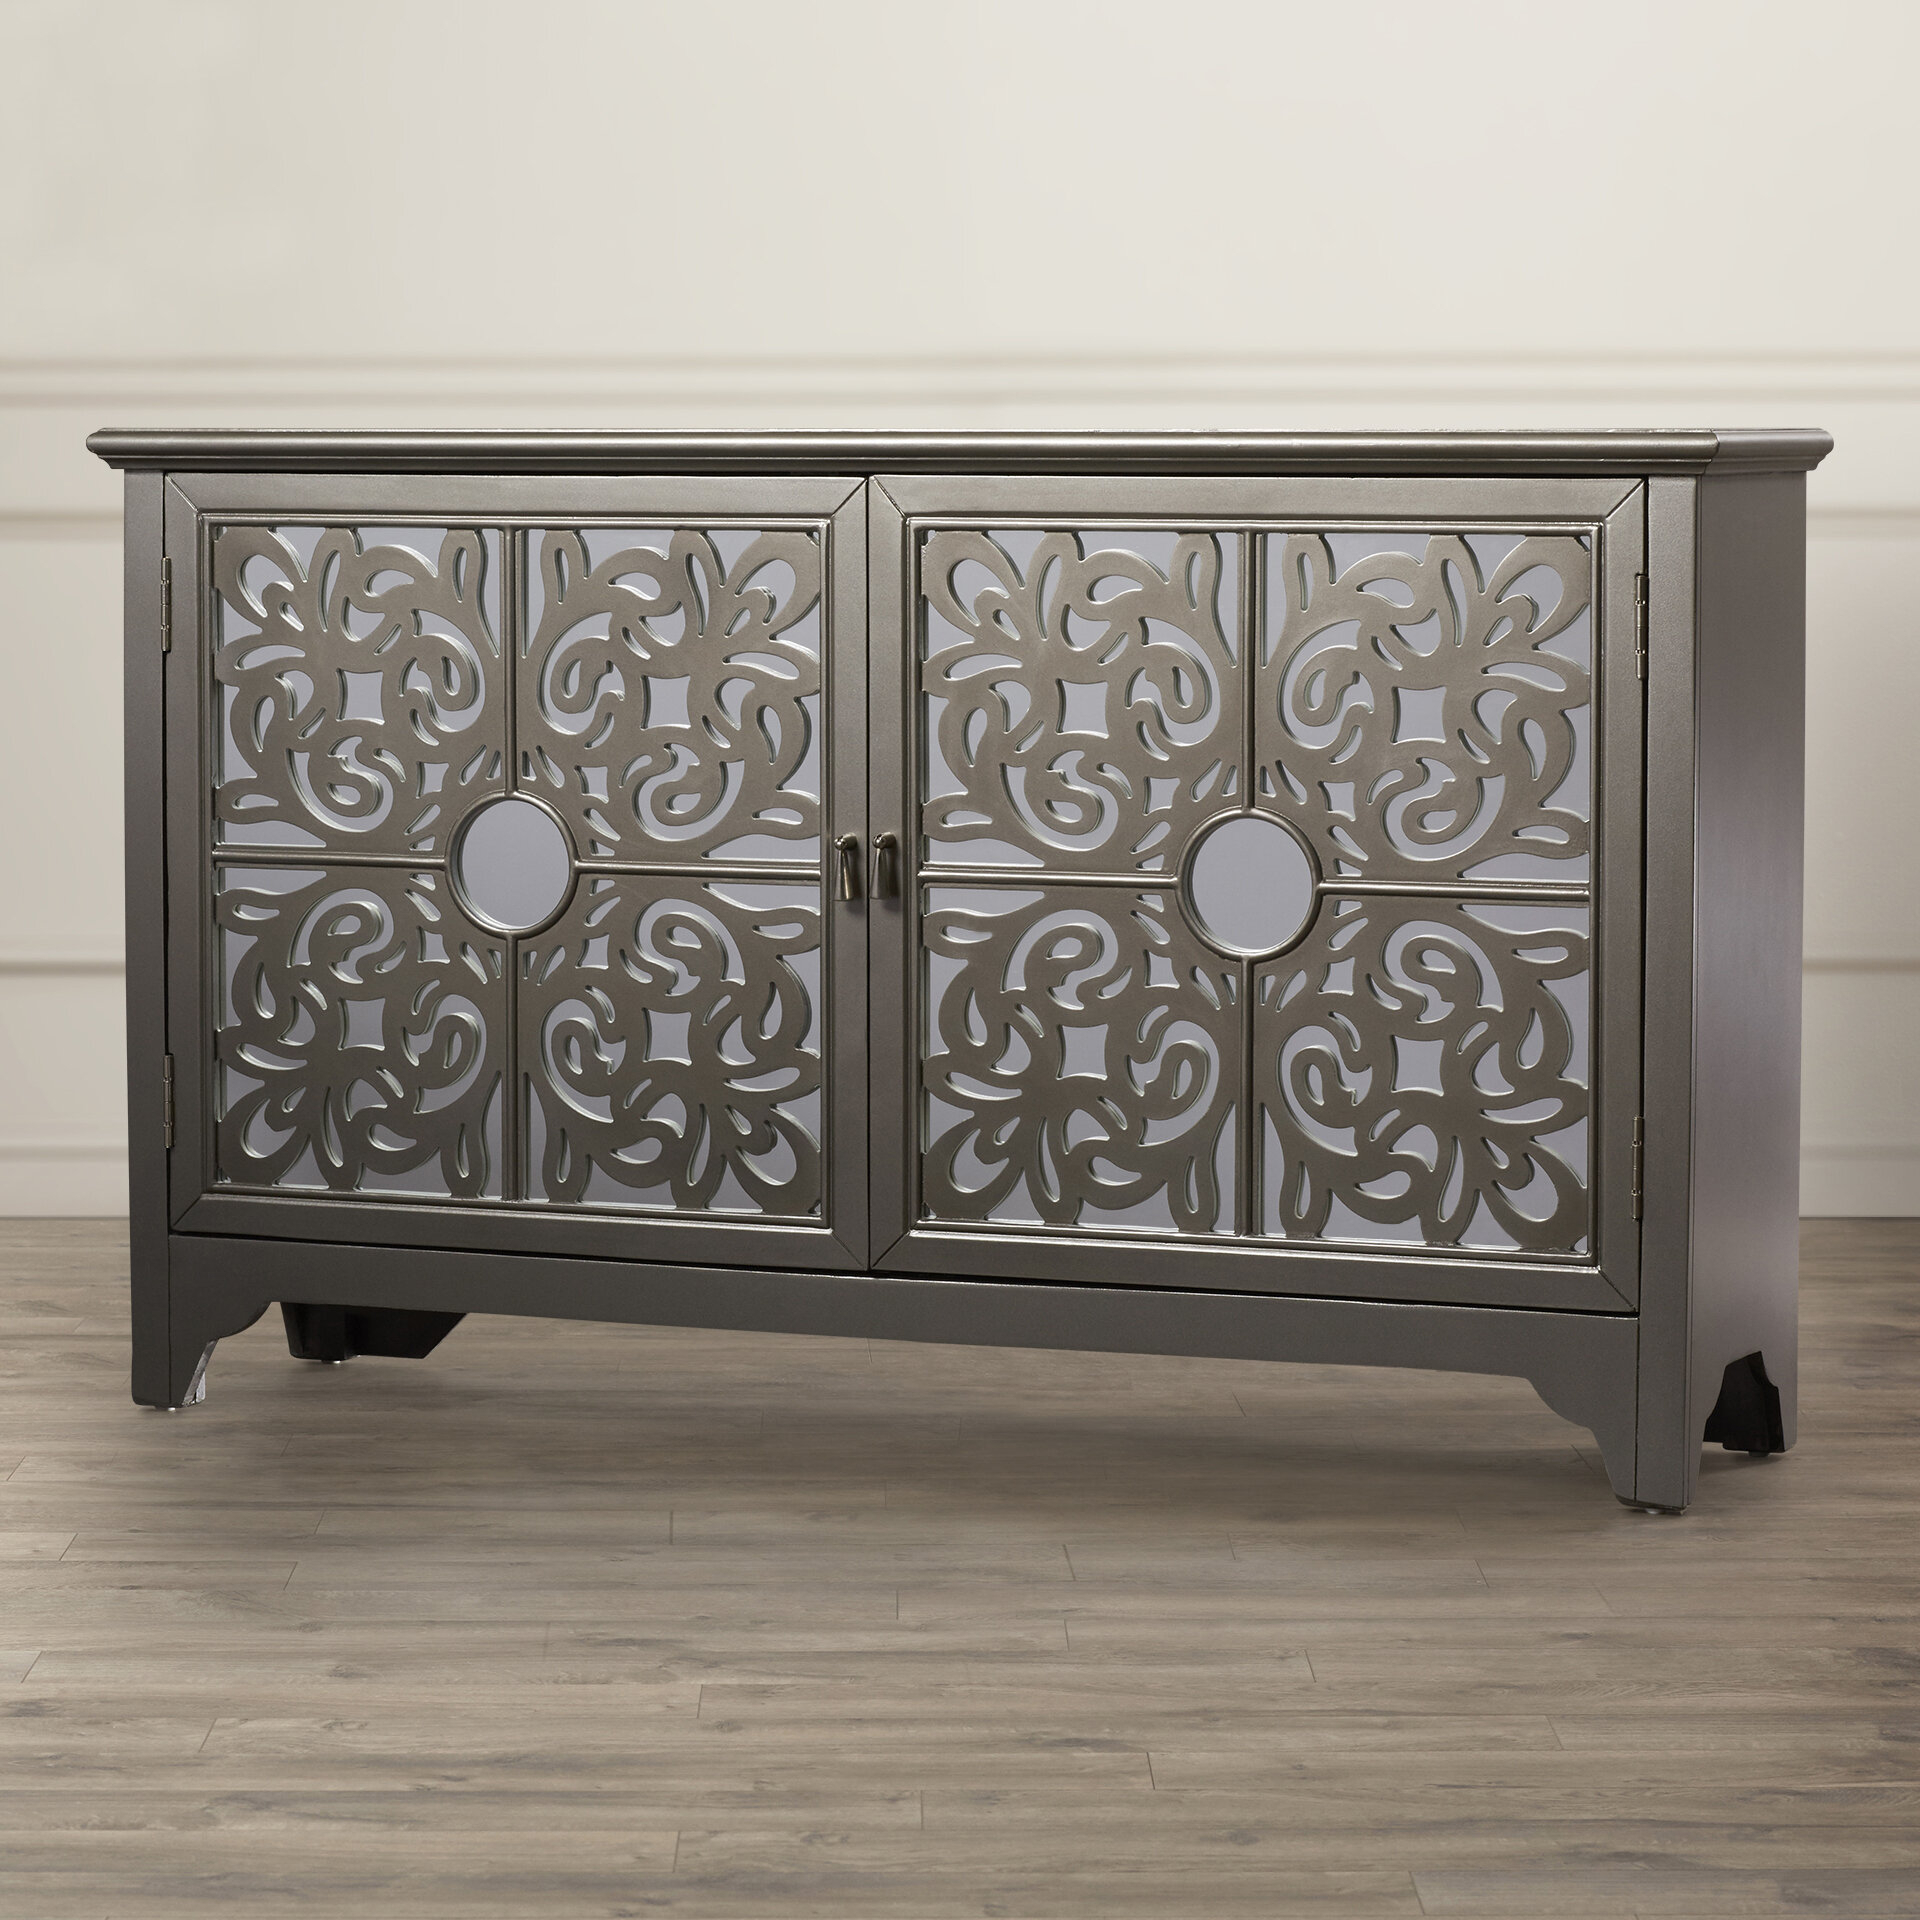 Farmhouse & Rustic Assembled Sideboards & Buffets | Birch Lane within Kronburgh Sideboards (Image 11 of 30)